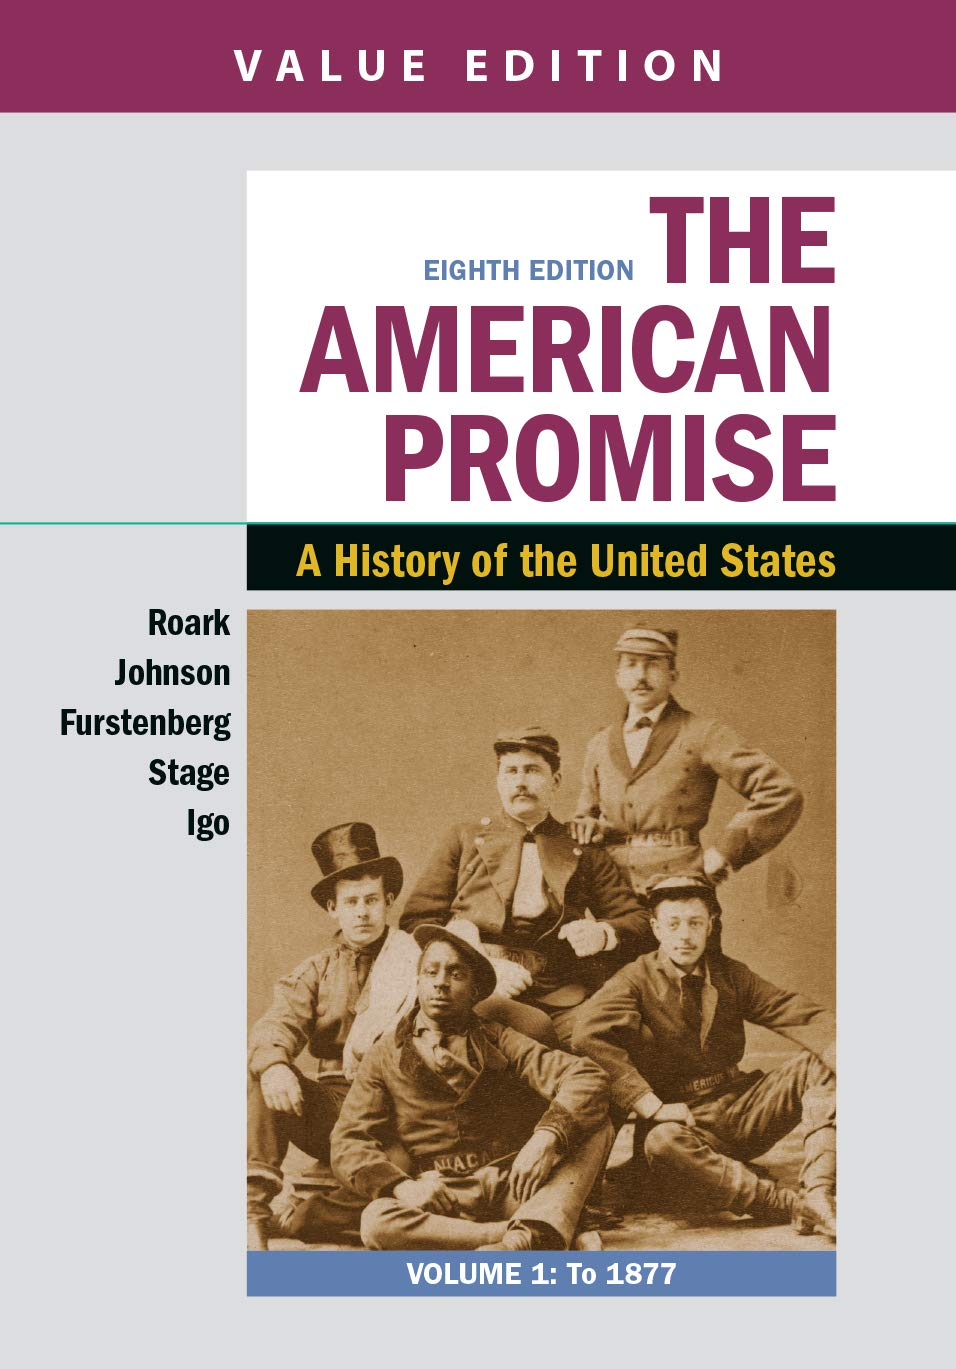 The American Promise 7th Edition Pdf Free